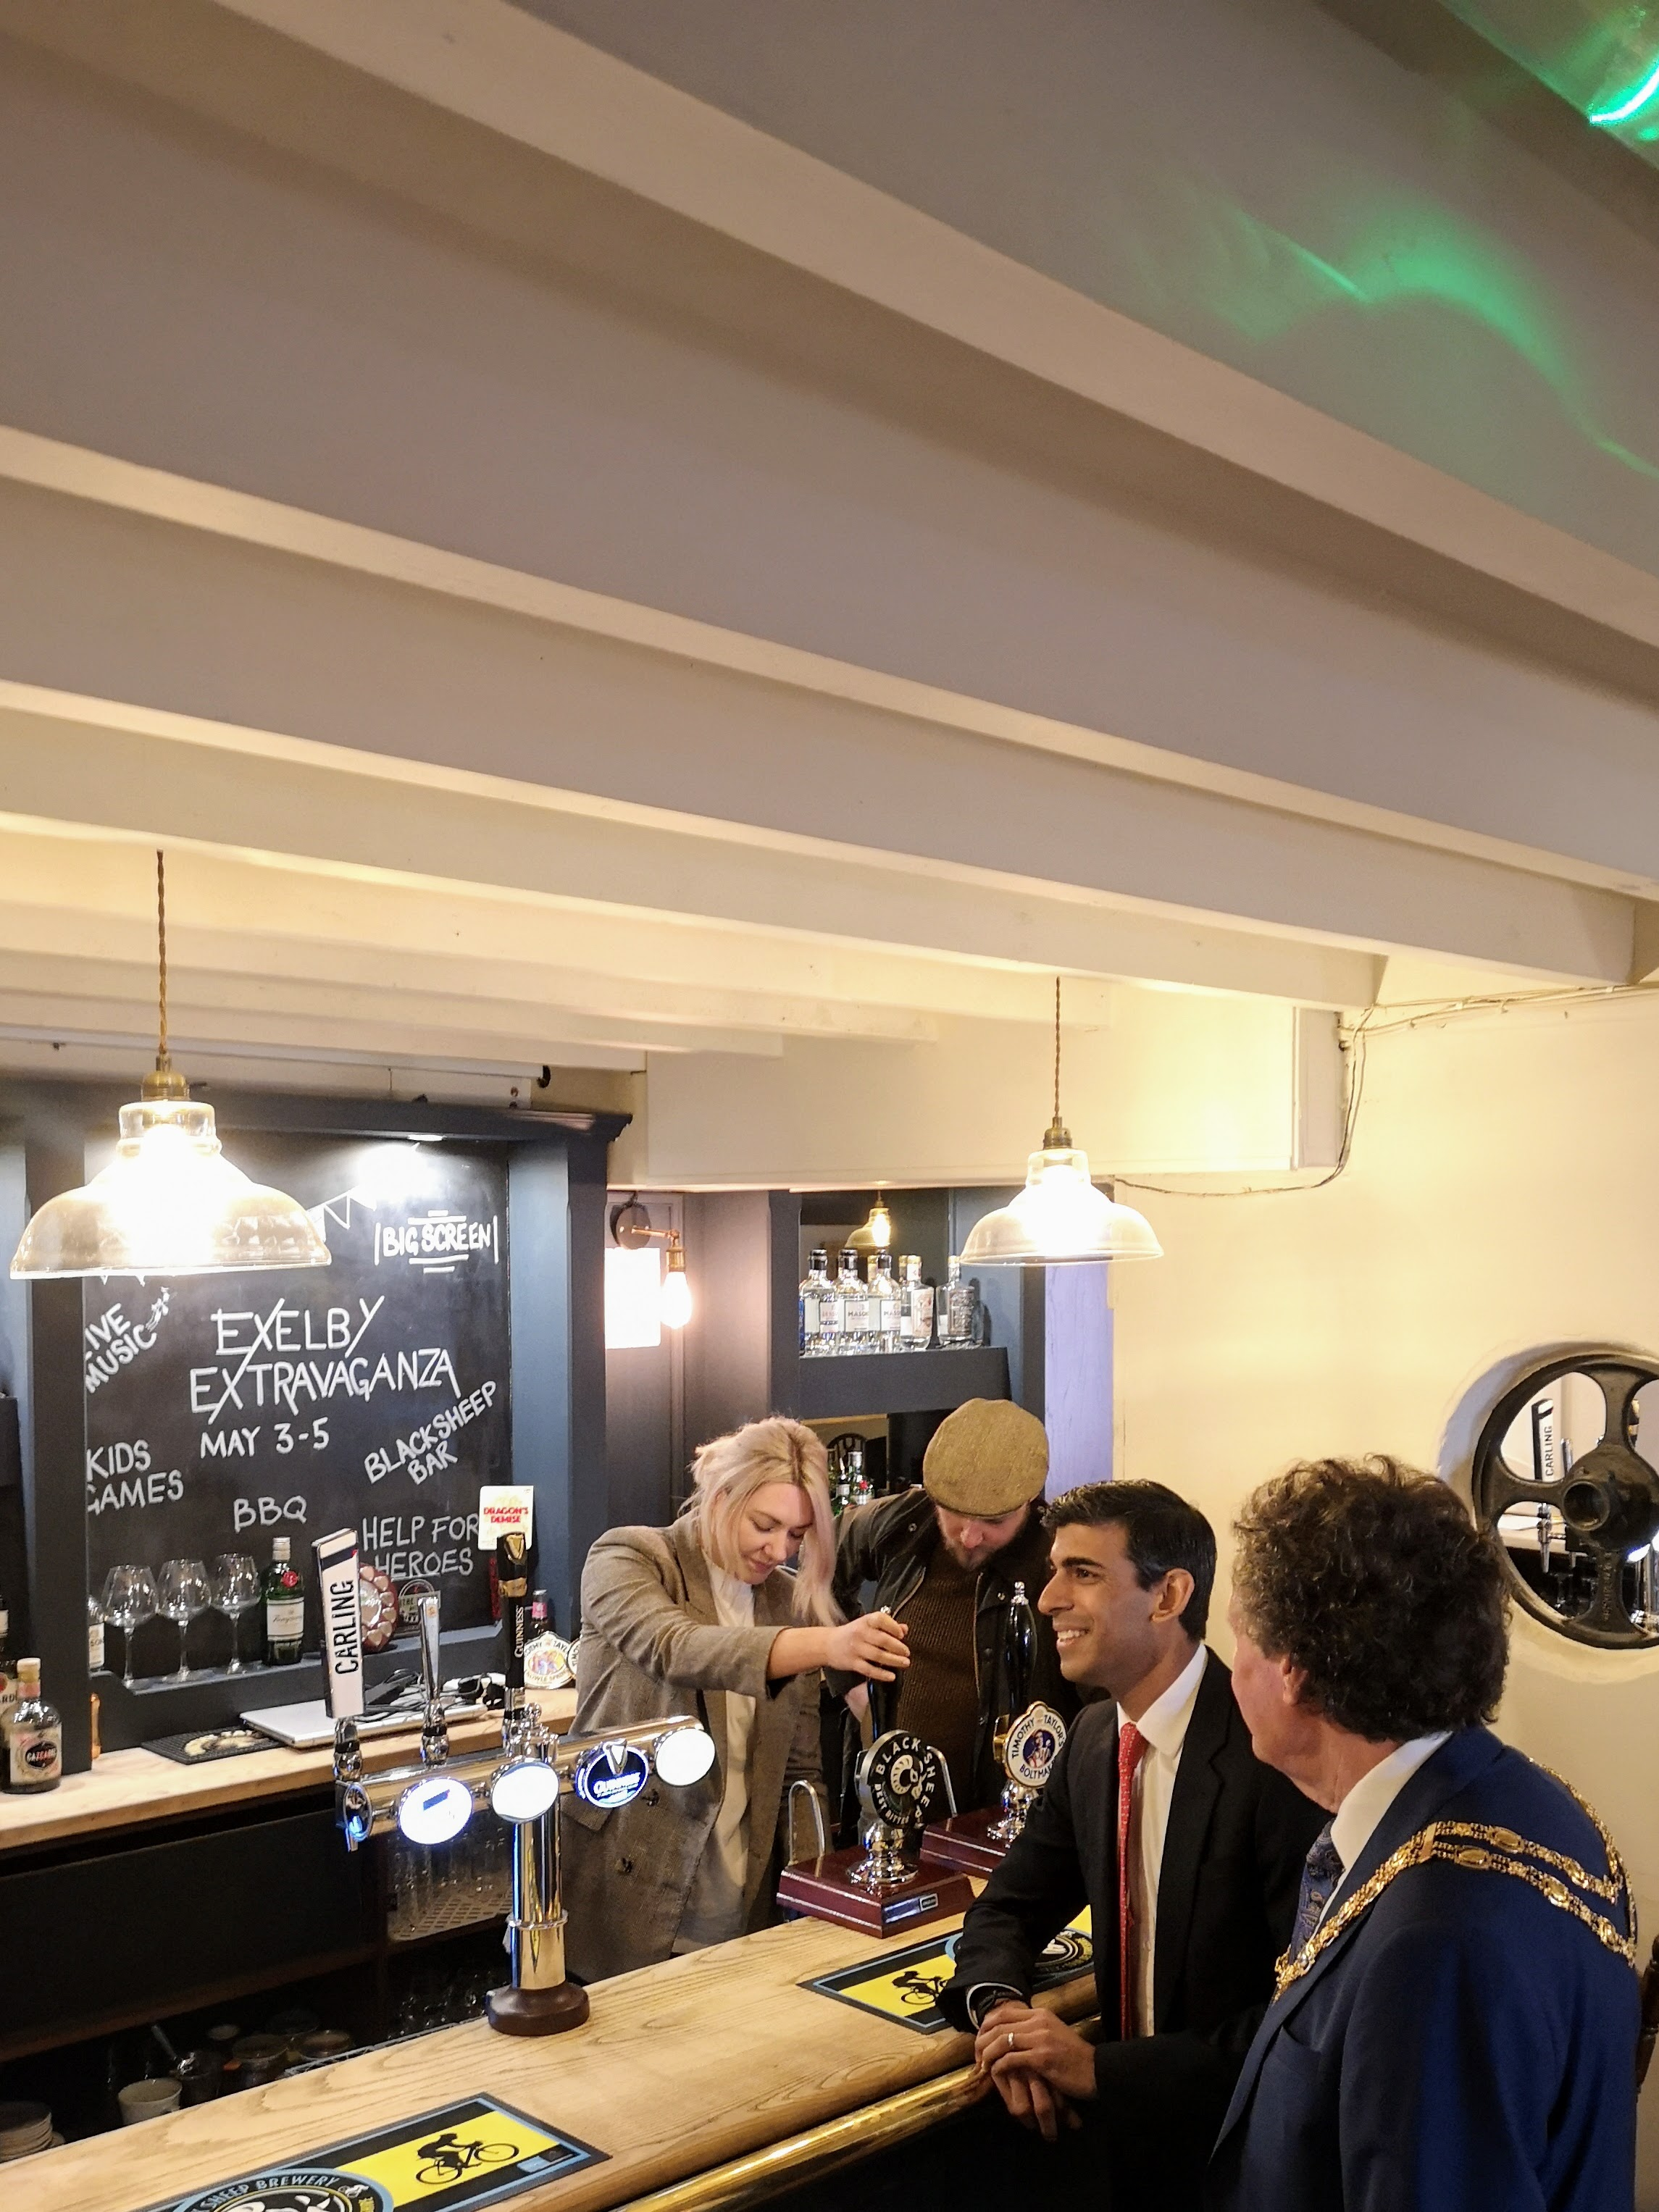 It's not every day when your MP and the Chair of the District Council drop in for a pint!